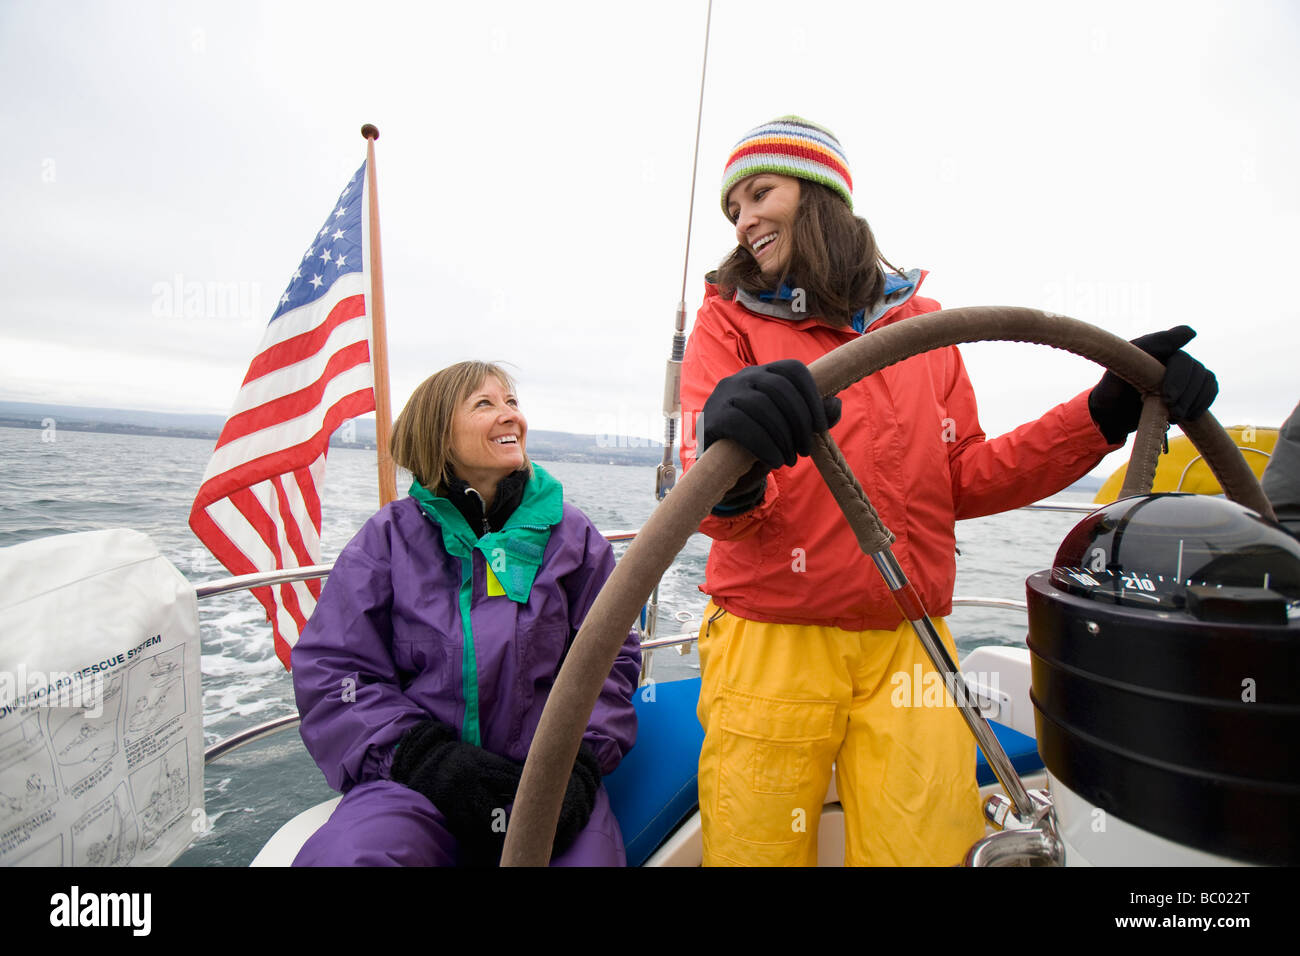 Two smiling women in sailing gear steer a sailboat on a cloudy day. - Stock Image